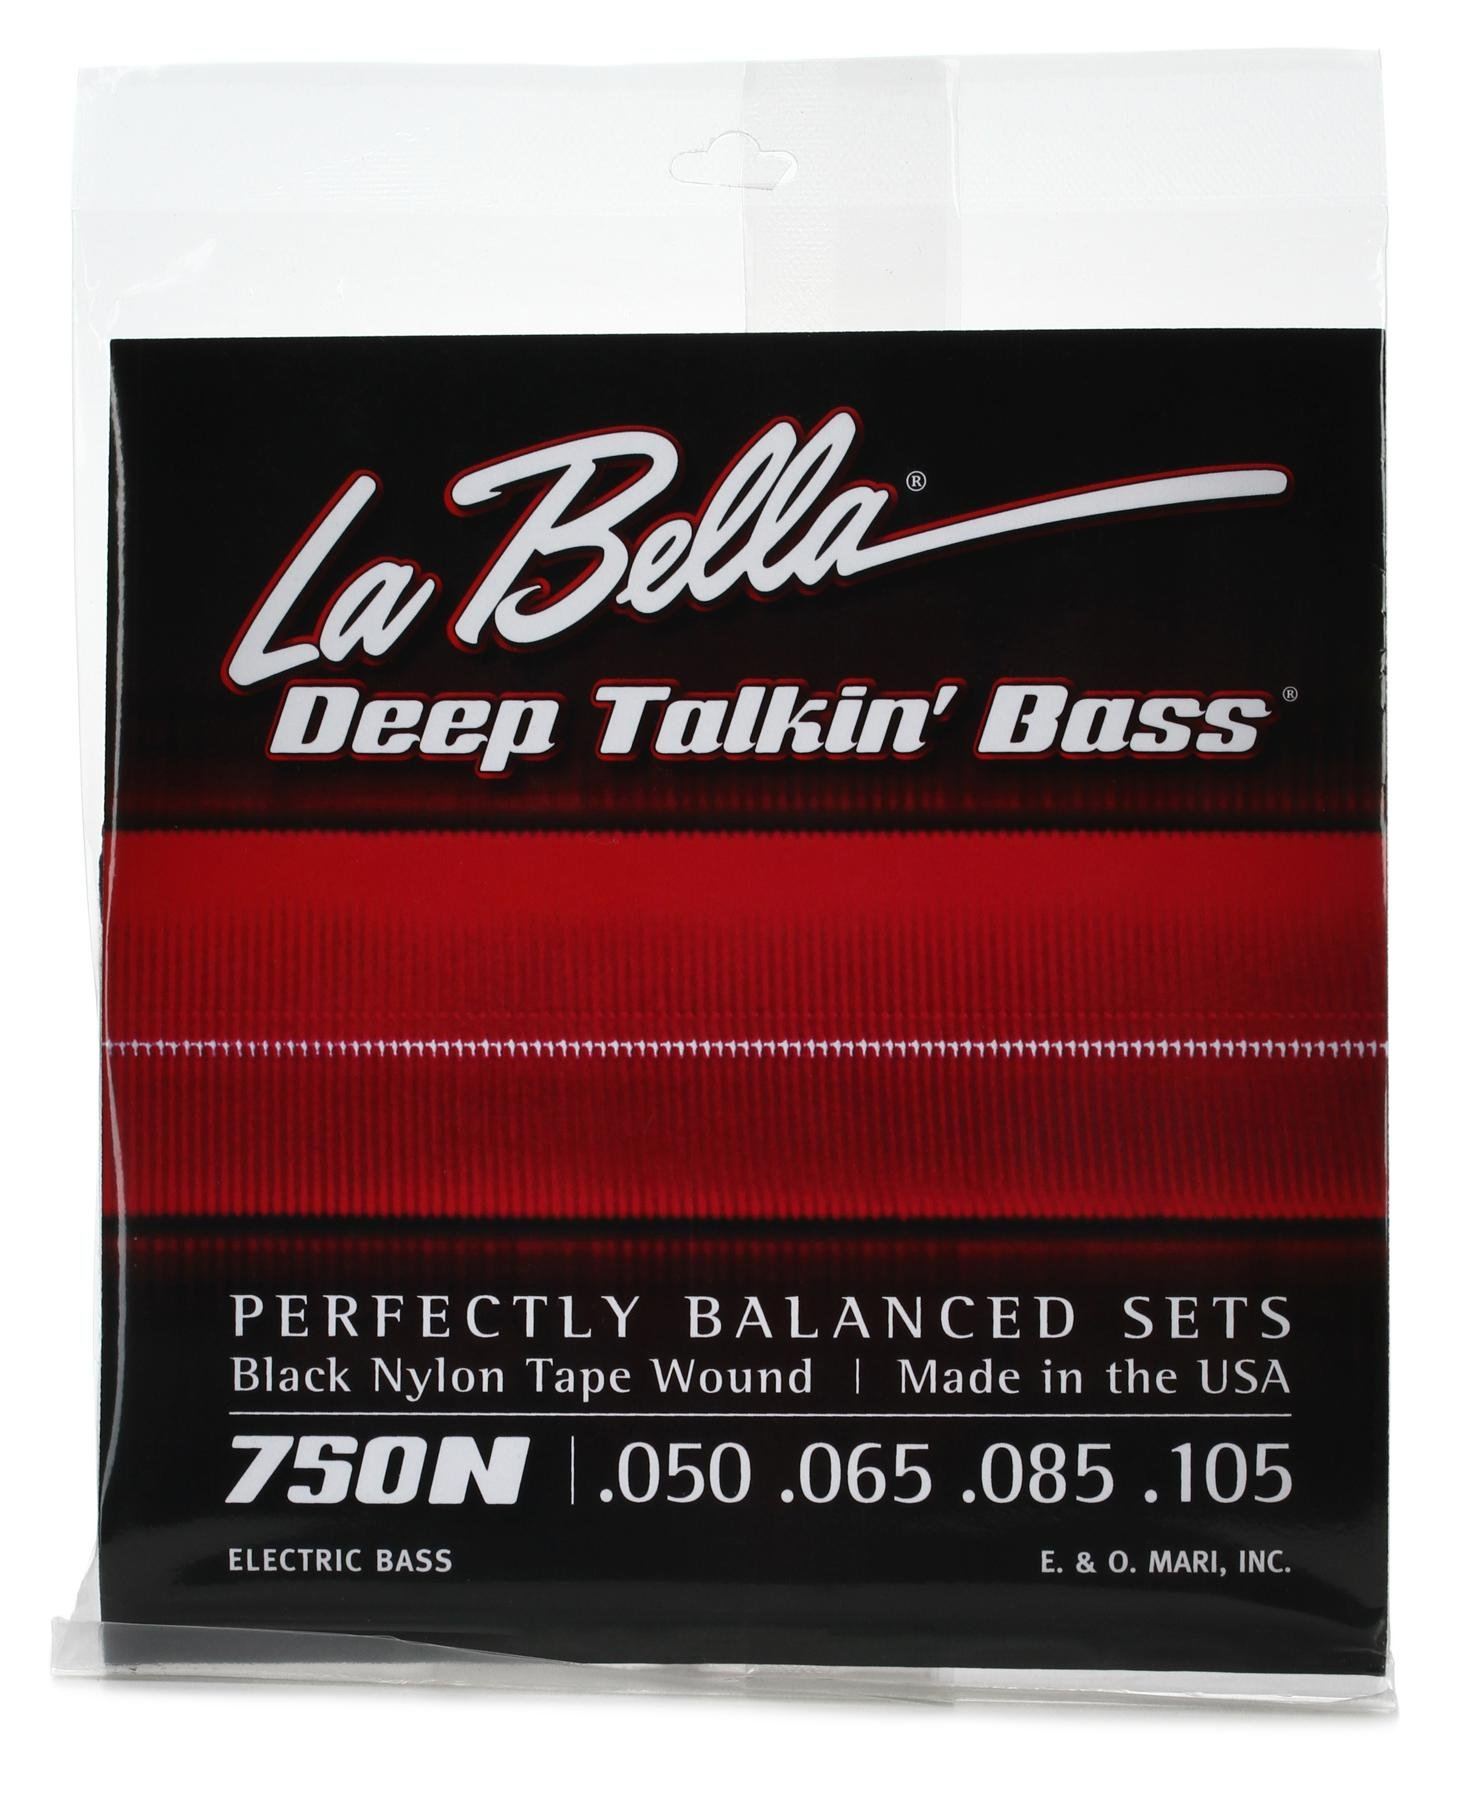 La Bella 750n Black Nylon Tapewound Bass Strings Light Sweetwater Pashmina Beautiful Four Season 039 80 Image 1